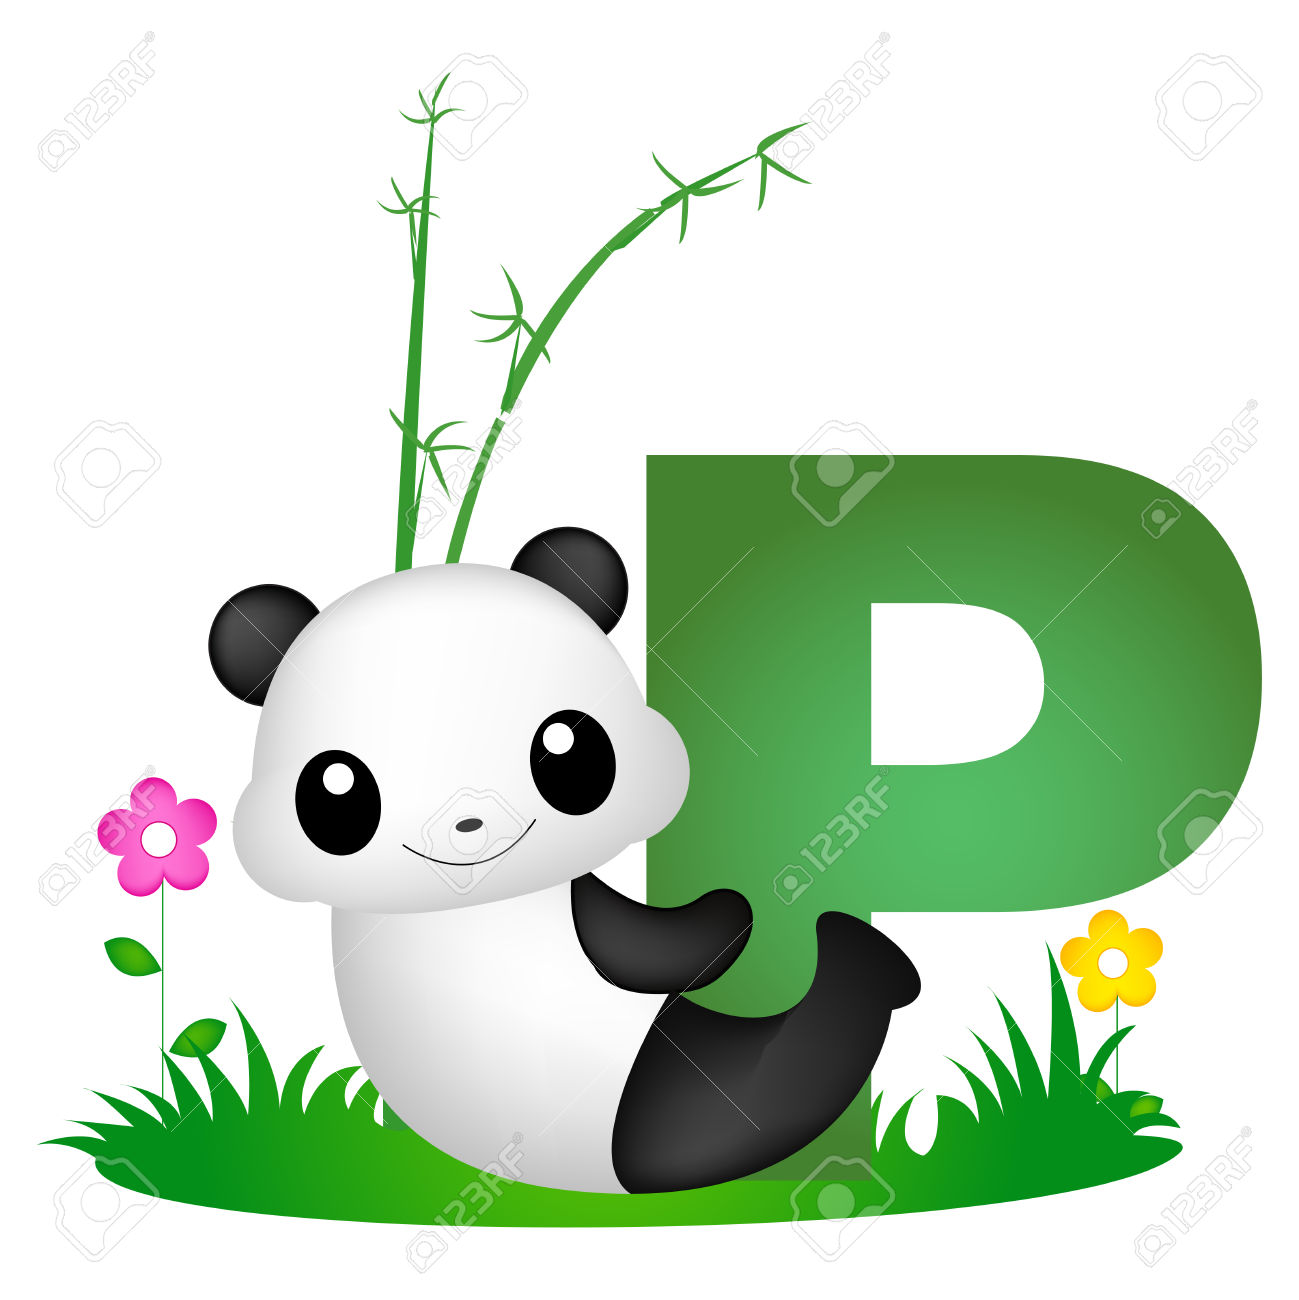 Colorful Animal Alphabet Letter P With A Cute Panda Flash Card.